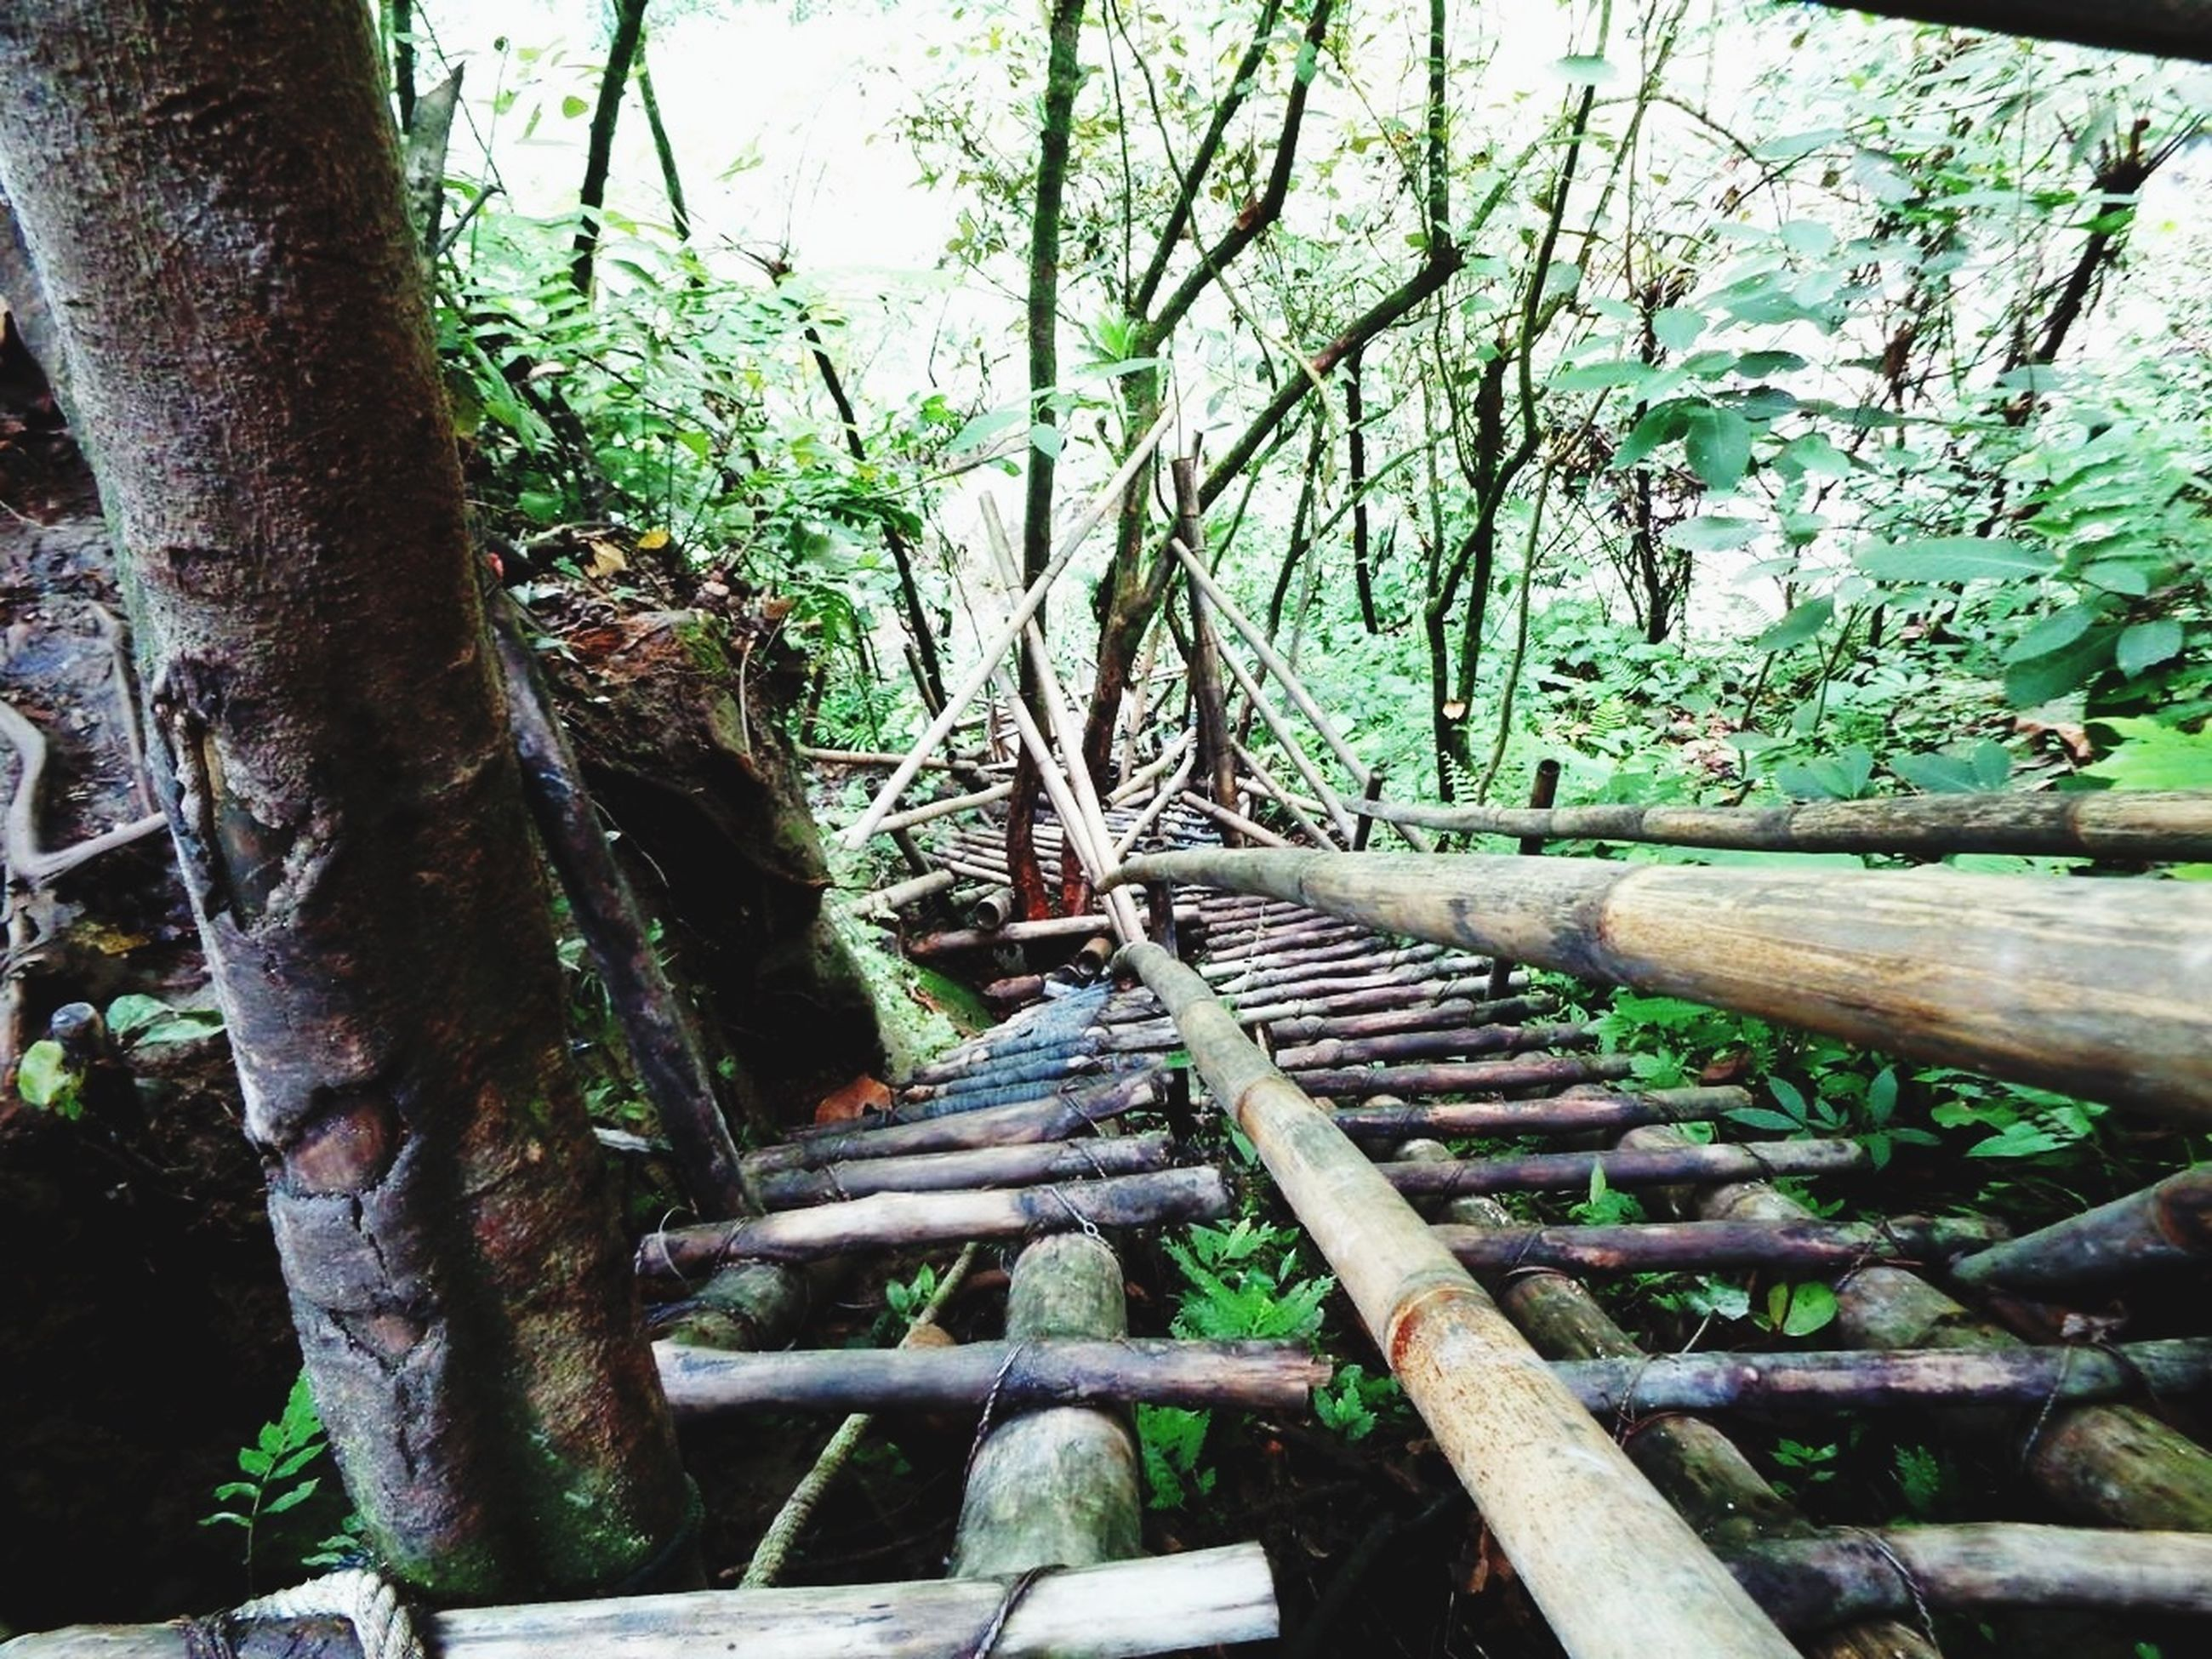 tree, growth, wood - material, tree trunk, tranquility, nature, branch, the way forward, railing, plant, forest, green color, steps, tranquil scene, outdoors, day, beauty in nature, no people, sunlight, footbridge